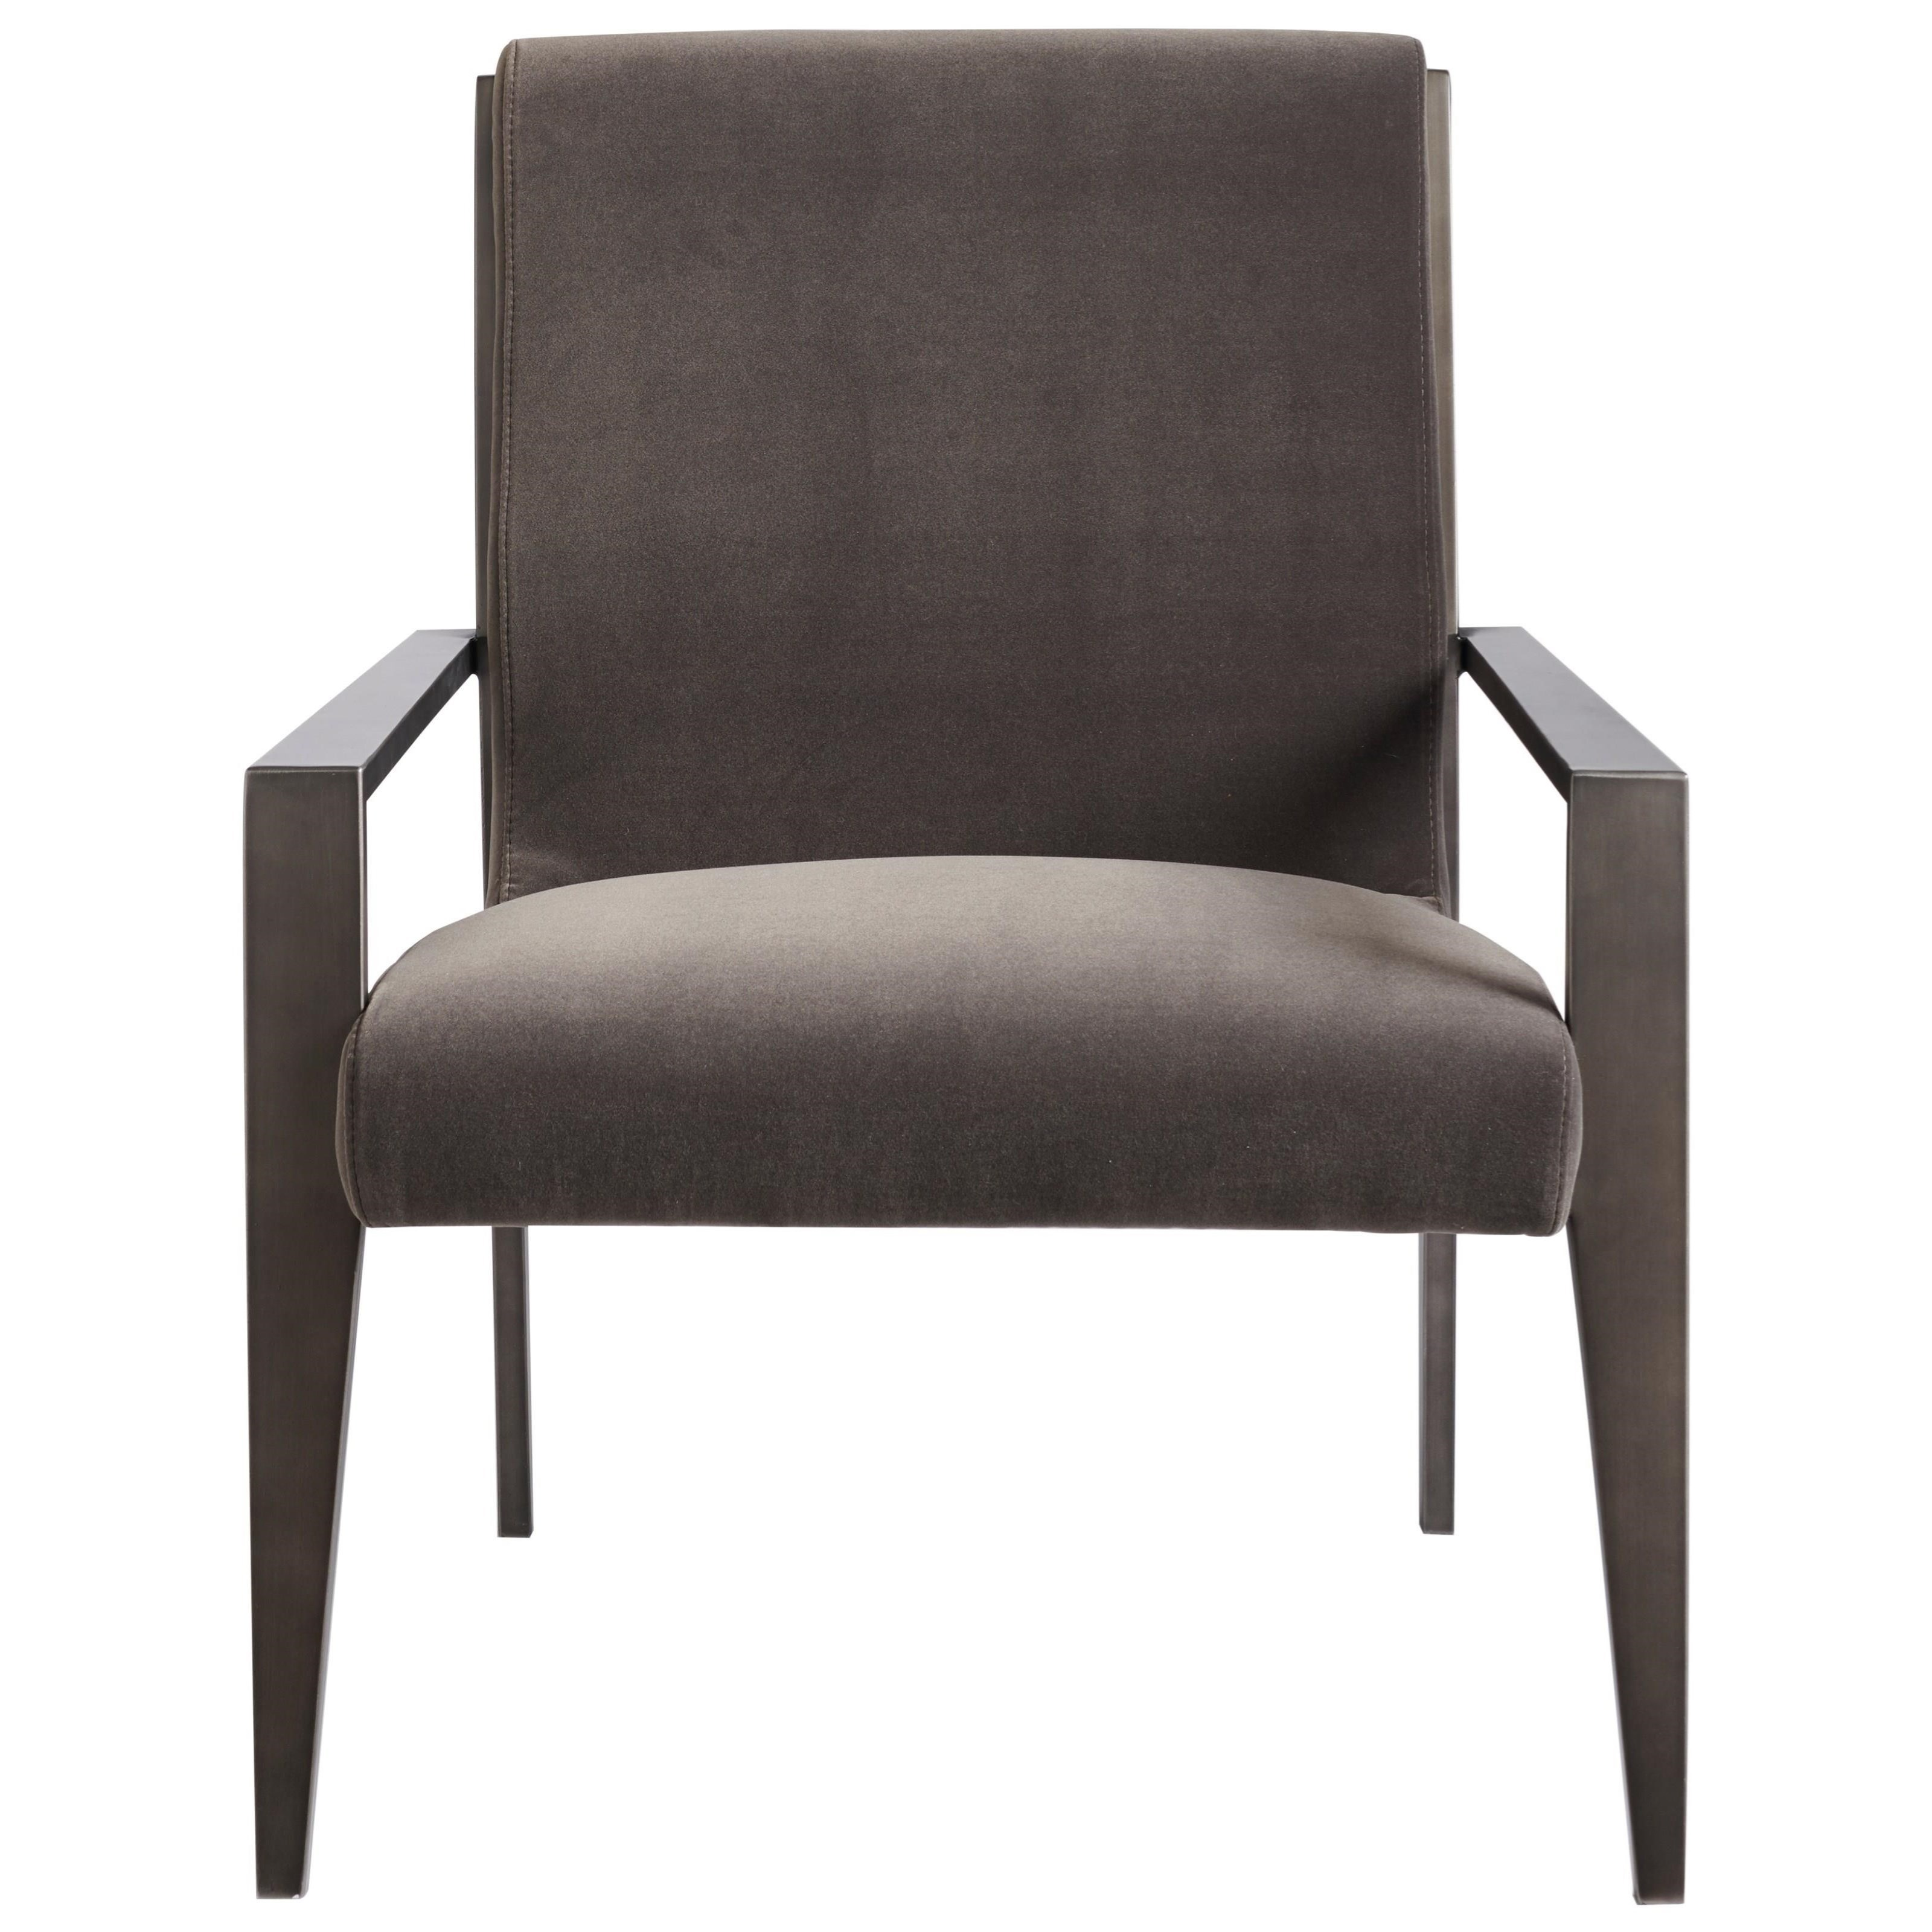 Nina Magon Mangold Accent Chair by Universal at Baer's Furniture